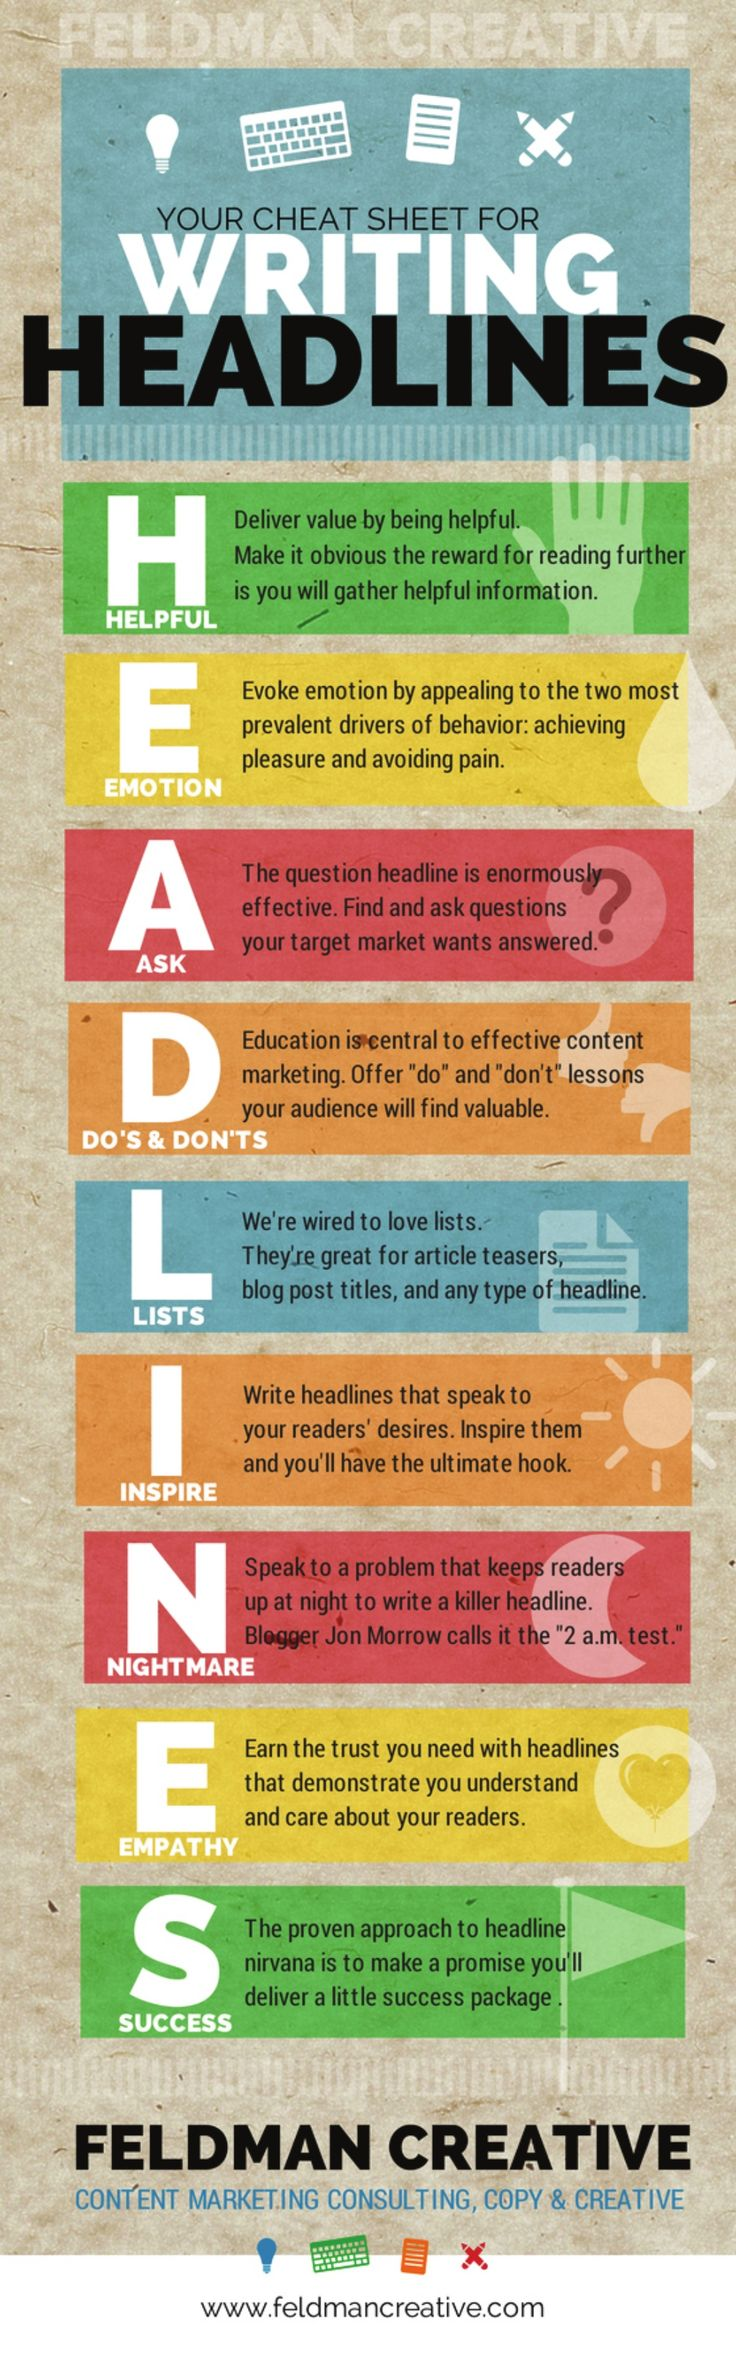 """SOCIAL MEDIA - """"Your Cheat Sheet for Writing Social Media Headlines #infographic""""."""